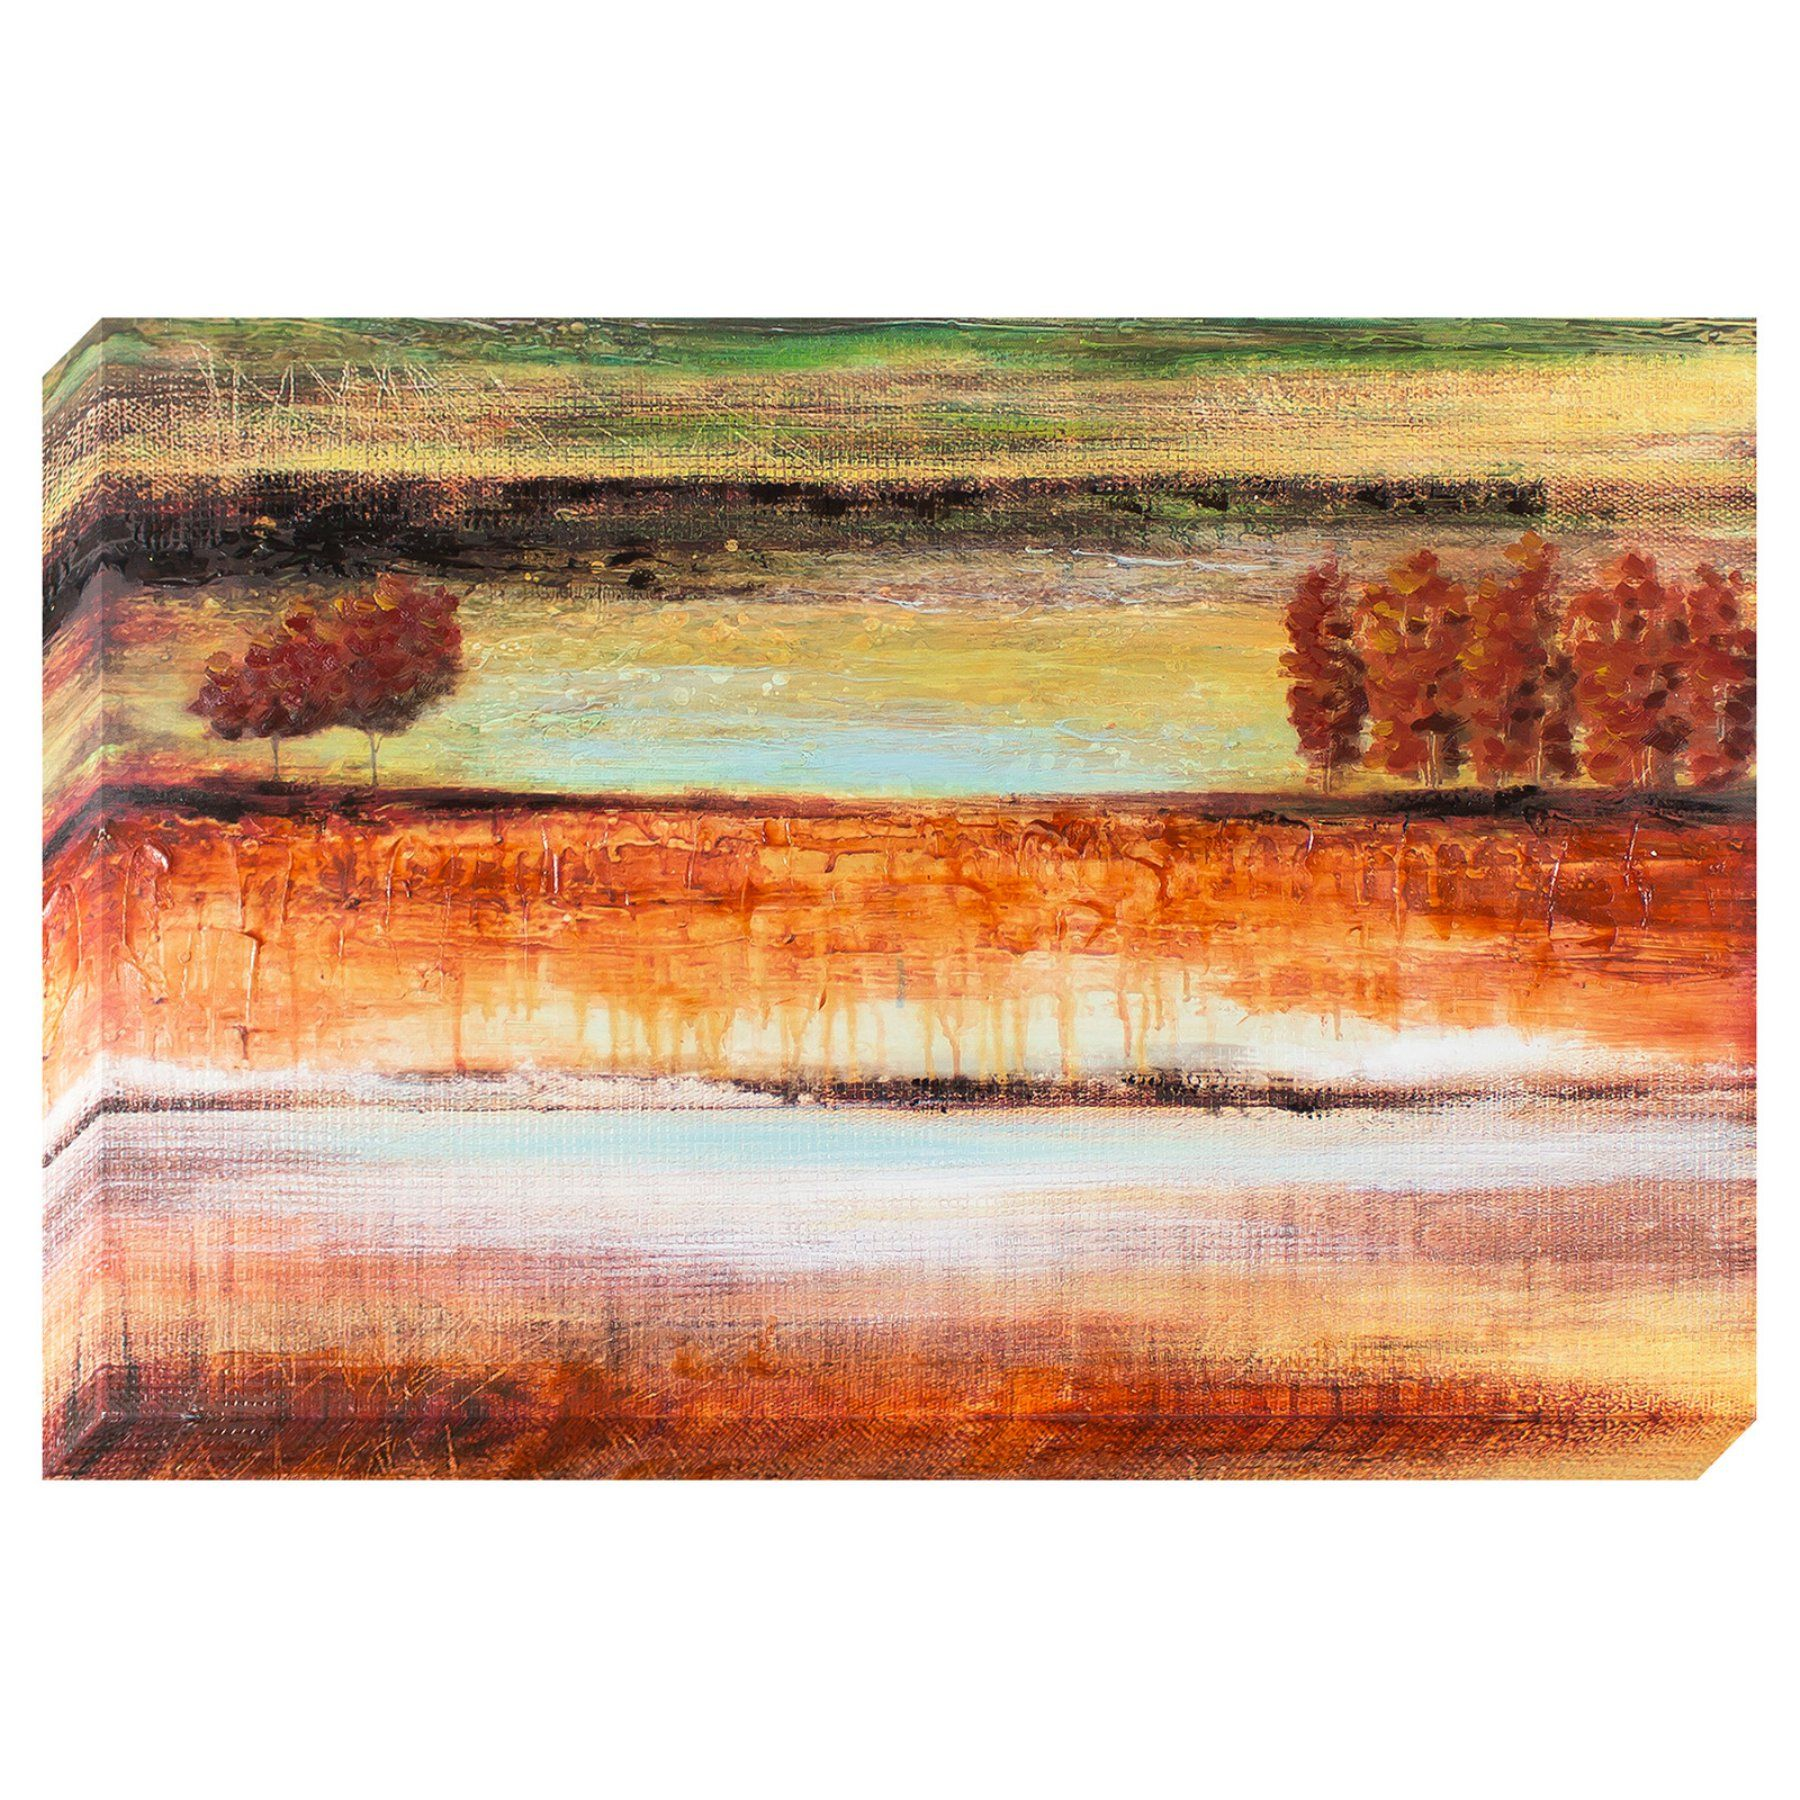 Decor Therapy Warm Layers Landscape Oil Painted Canvas - 1606-8138LOW